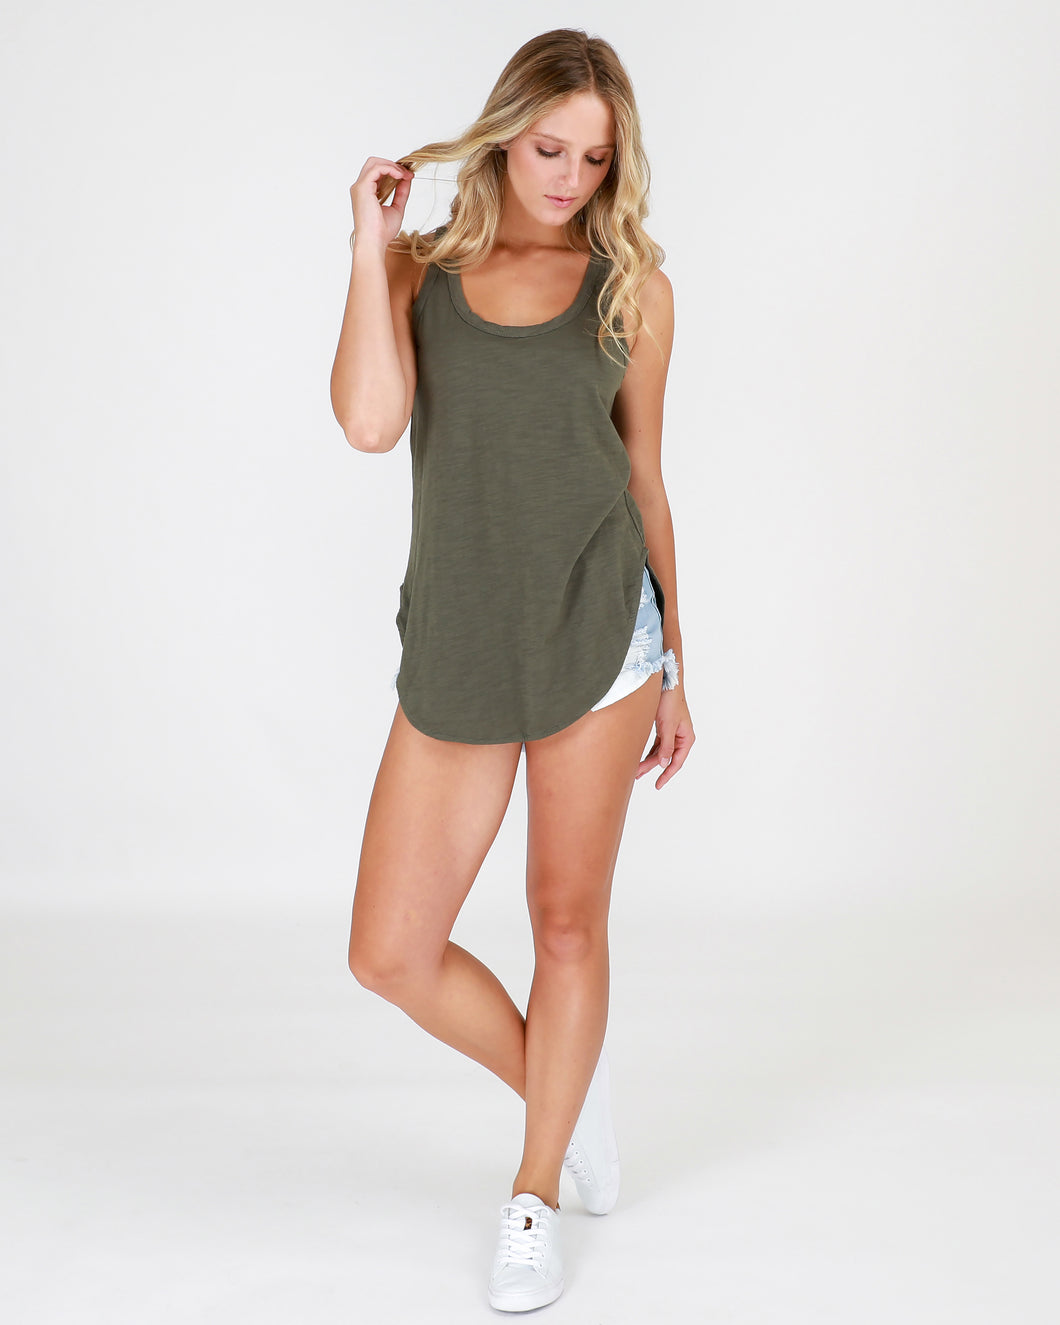 Plus Size || 3rd Story The Label Hamilton Tank - Khaki